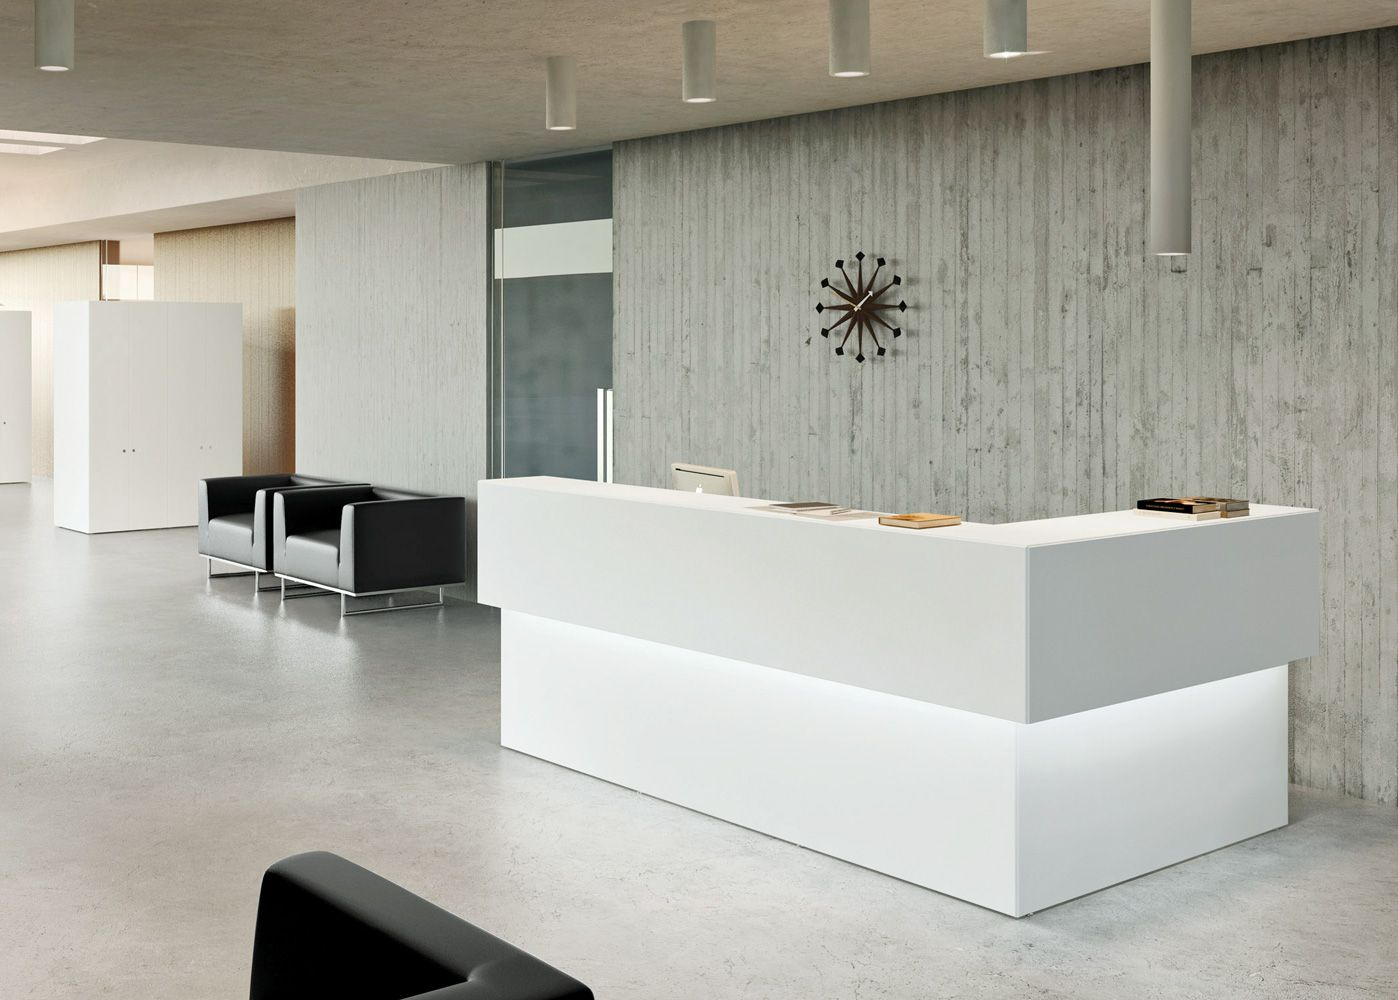 28 best RECEPTiON DESKS images on Pinterest | Reception furniture ...